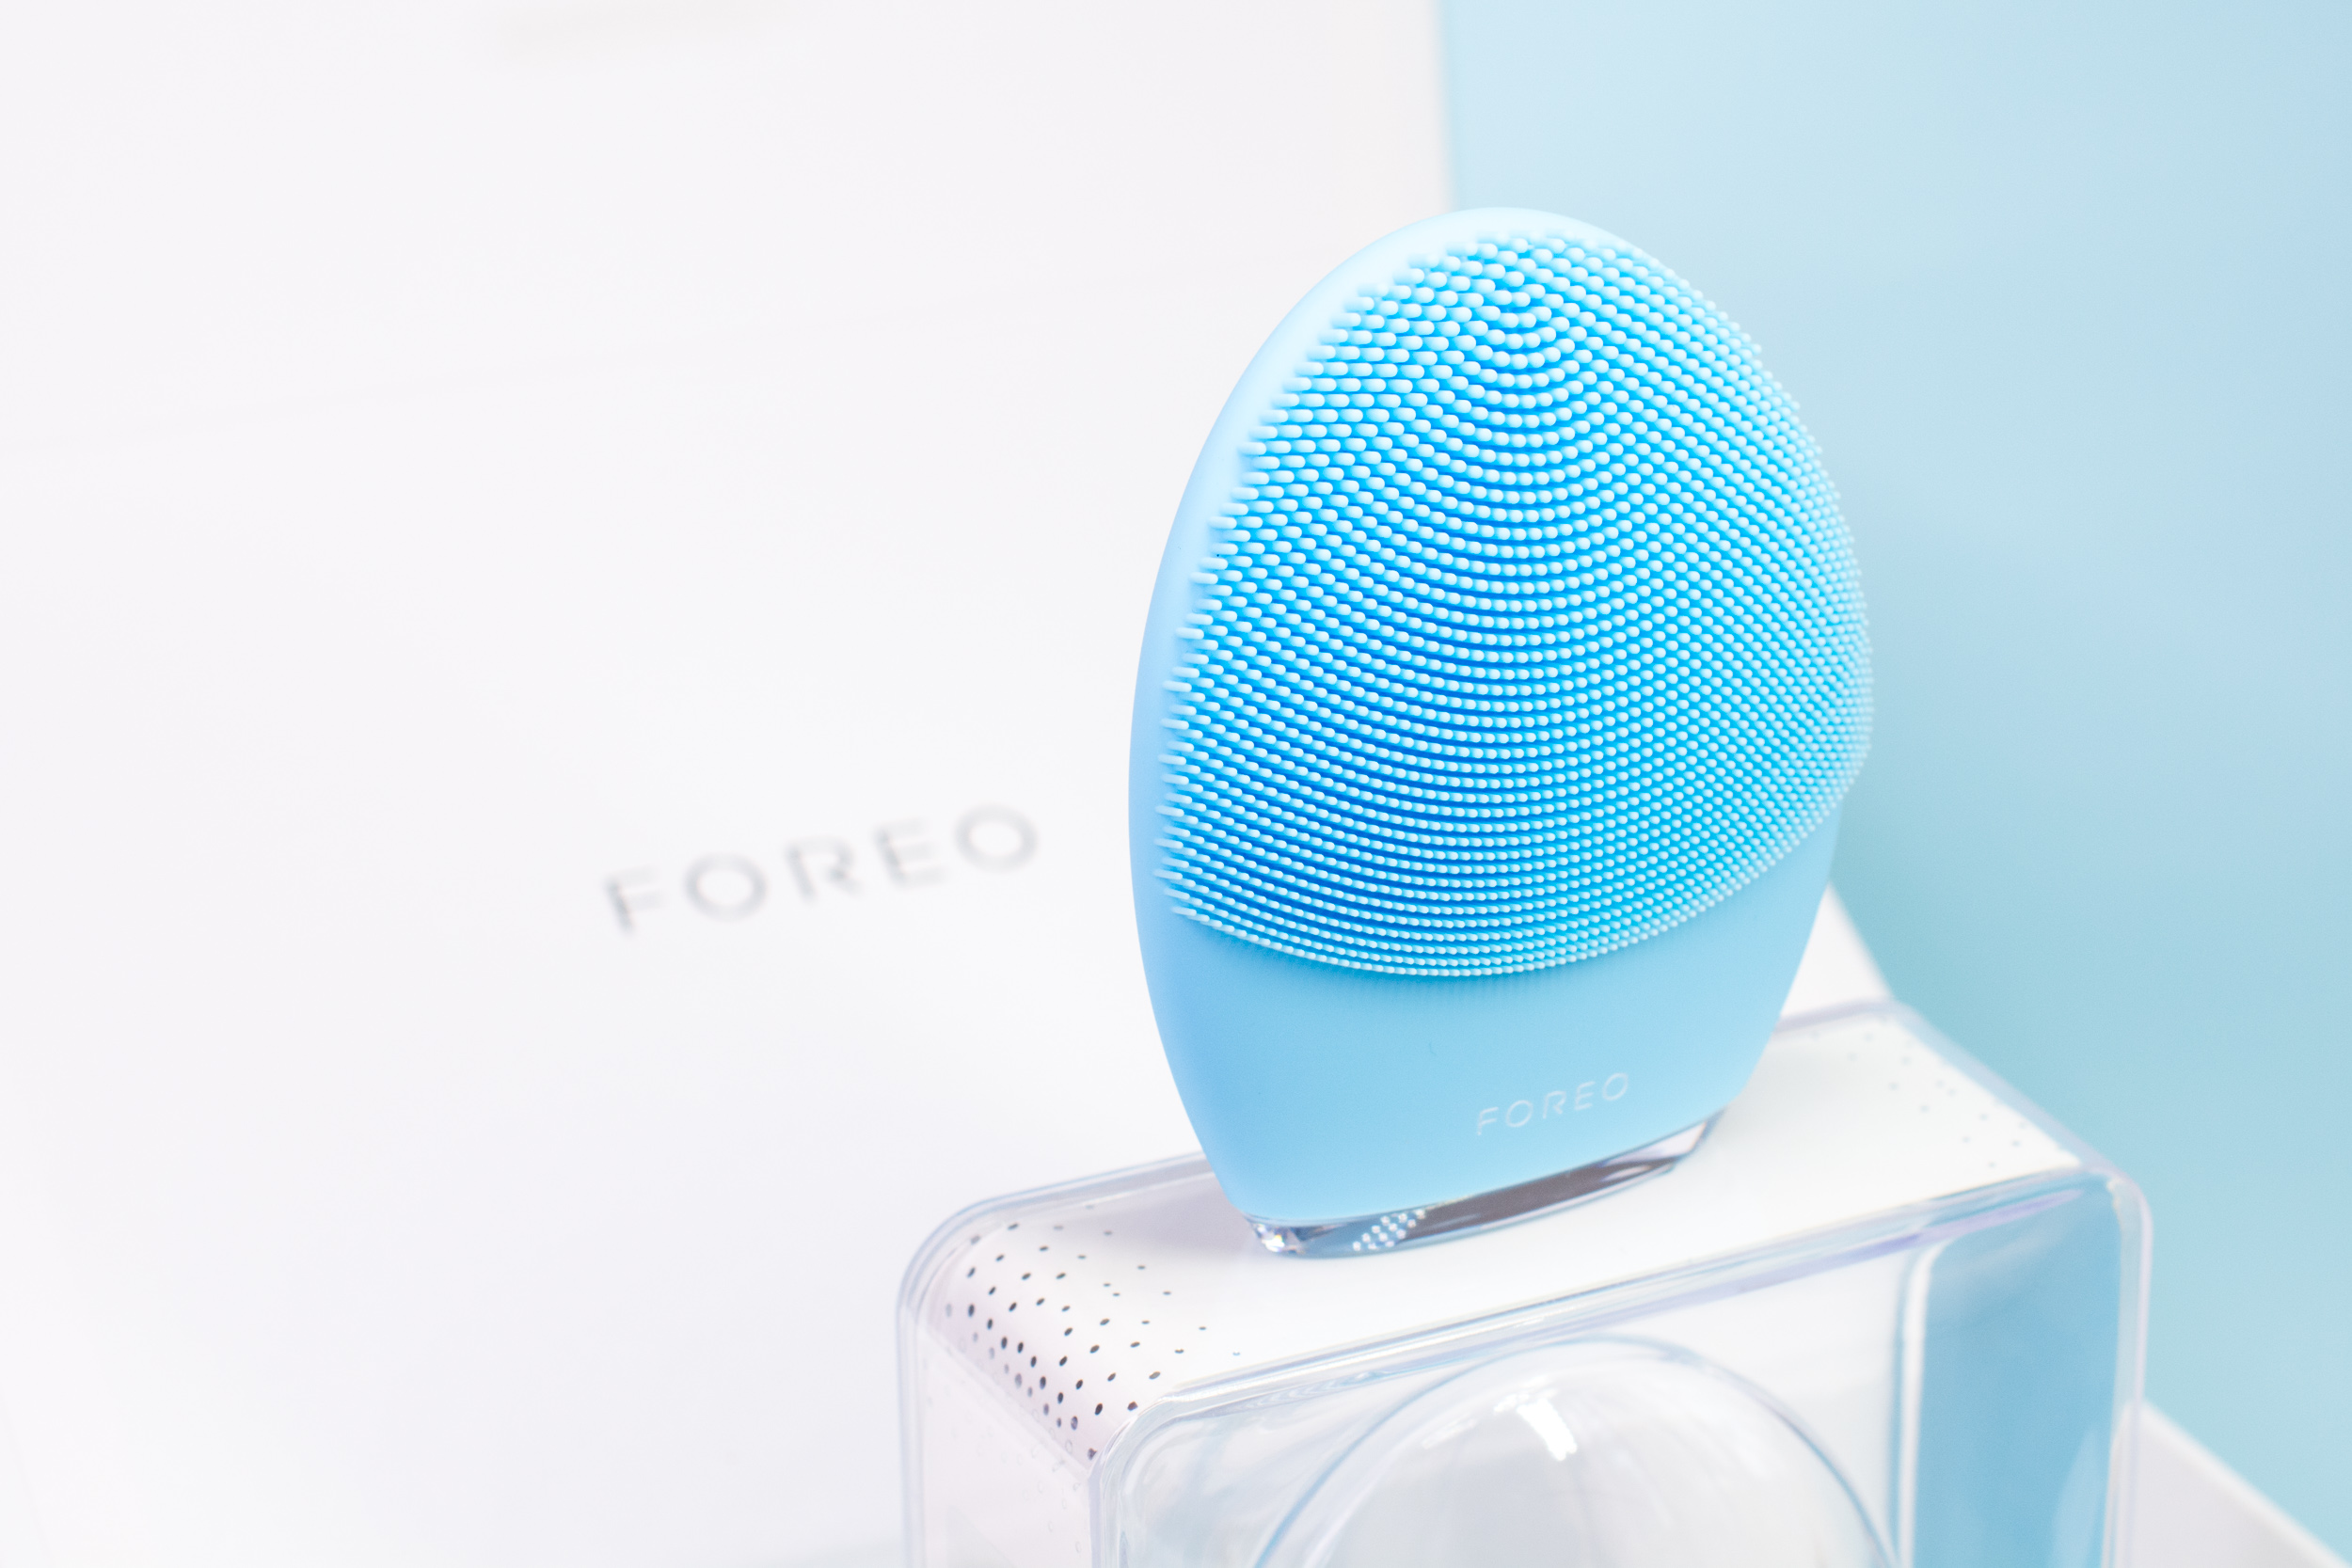 foreo-luna-3_facial-gadget_swedish-brand_review-philippines_2019-3.JPG